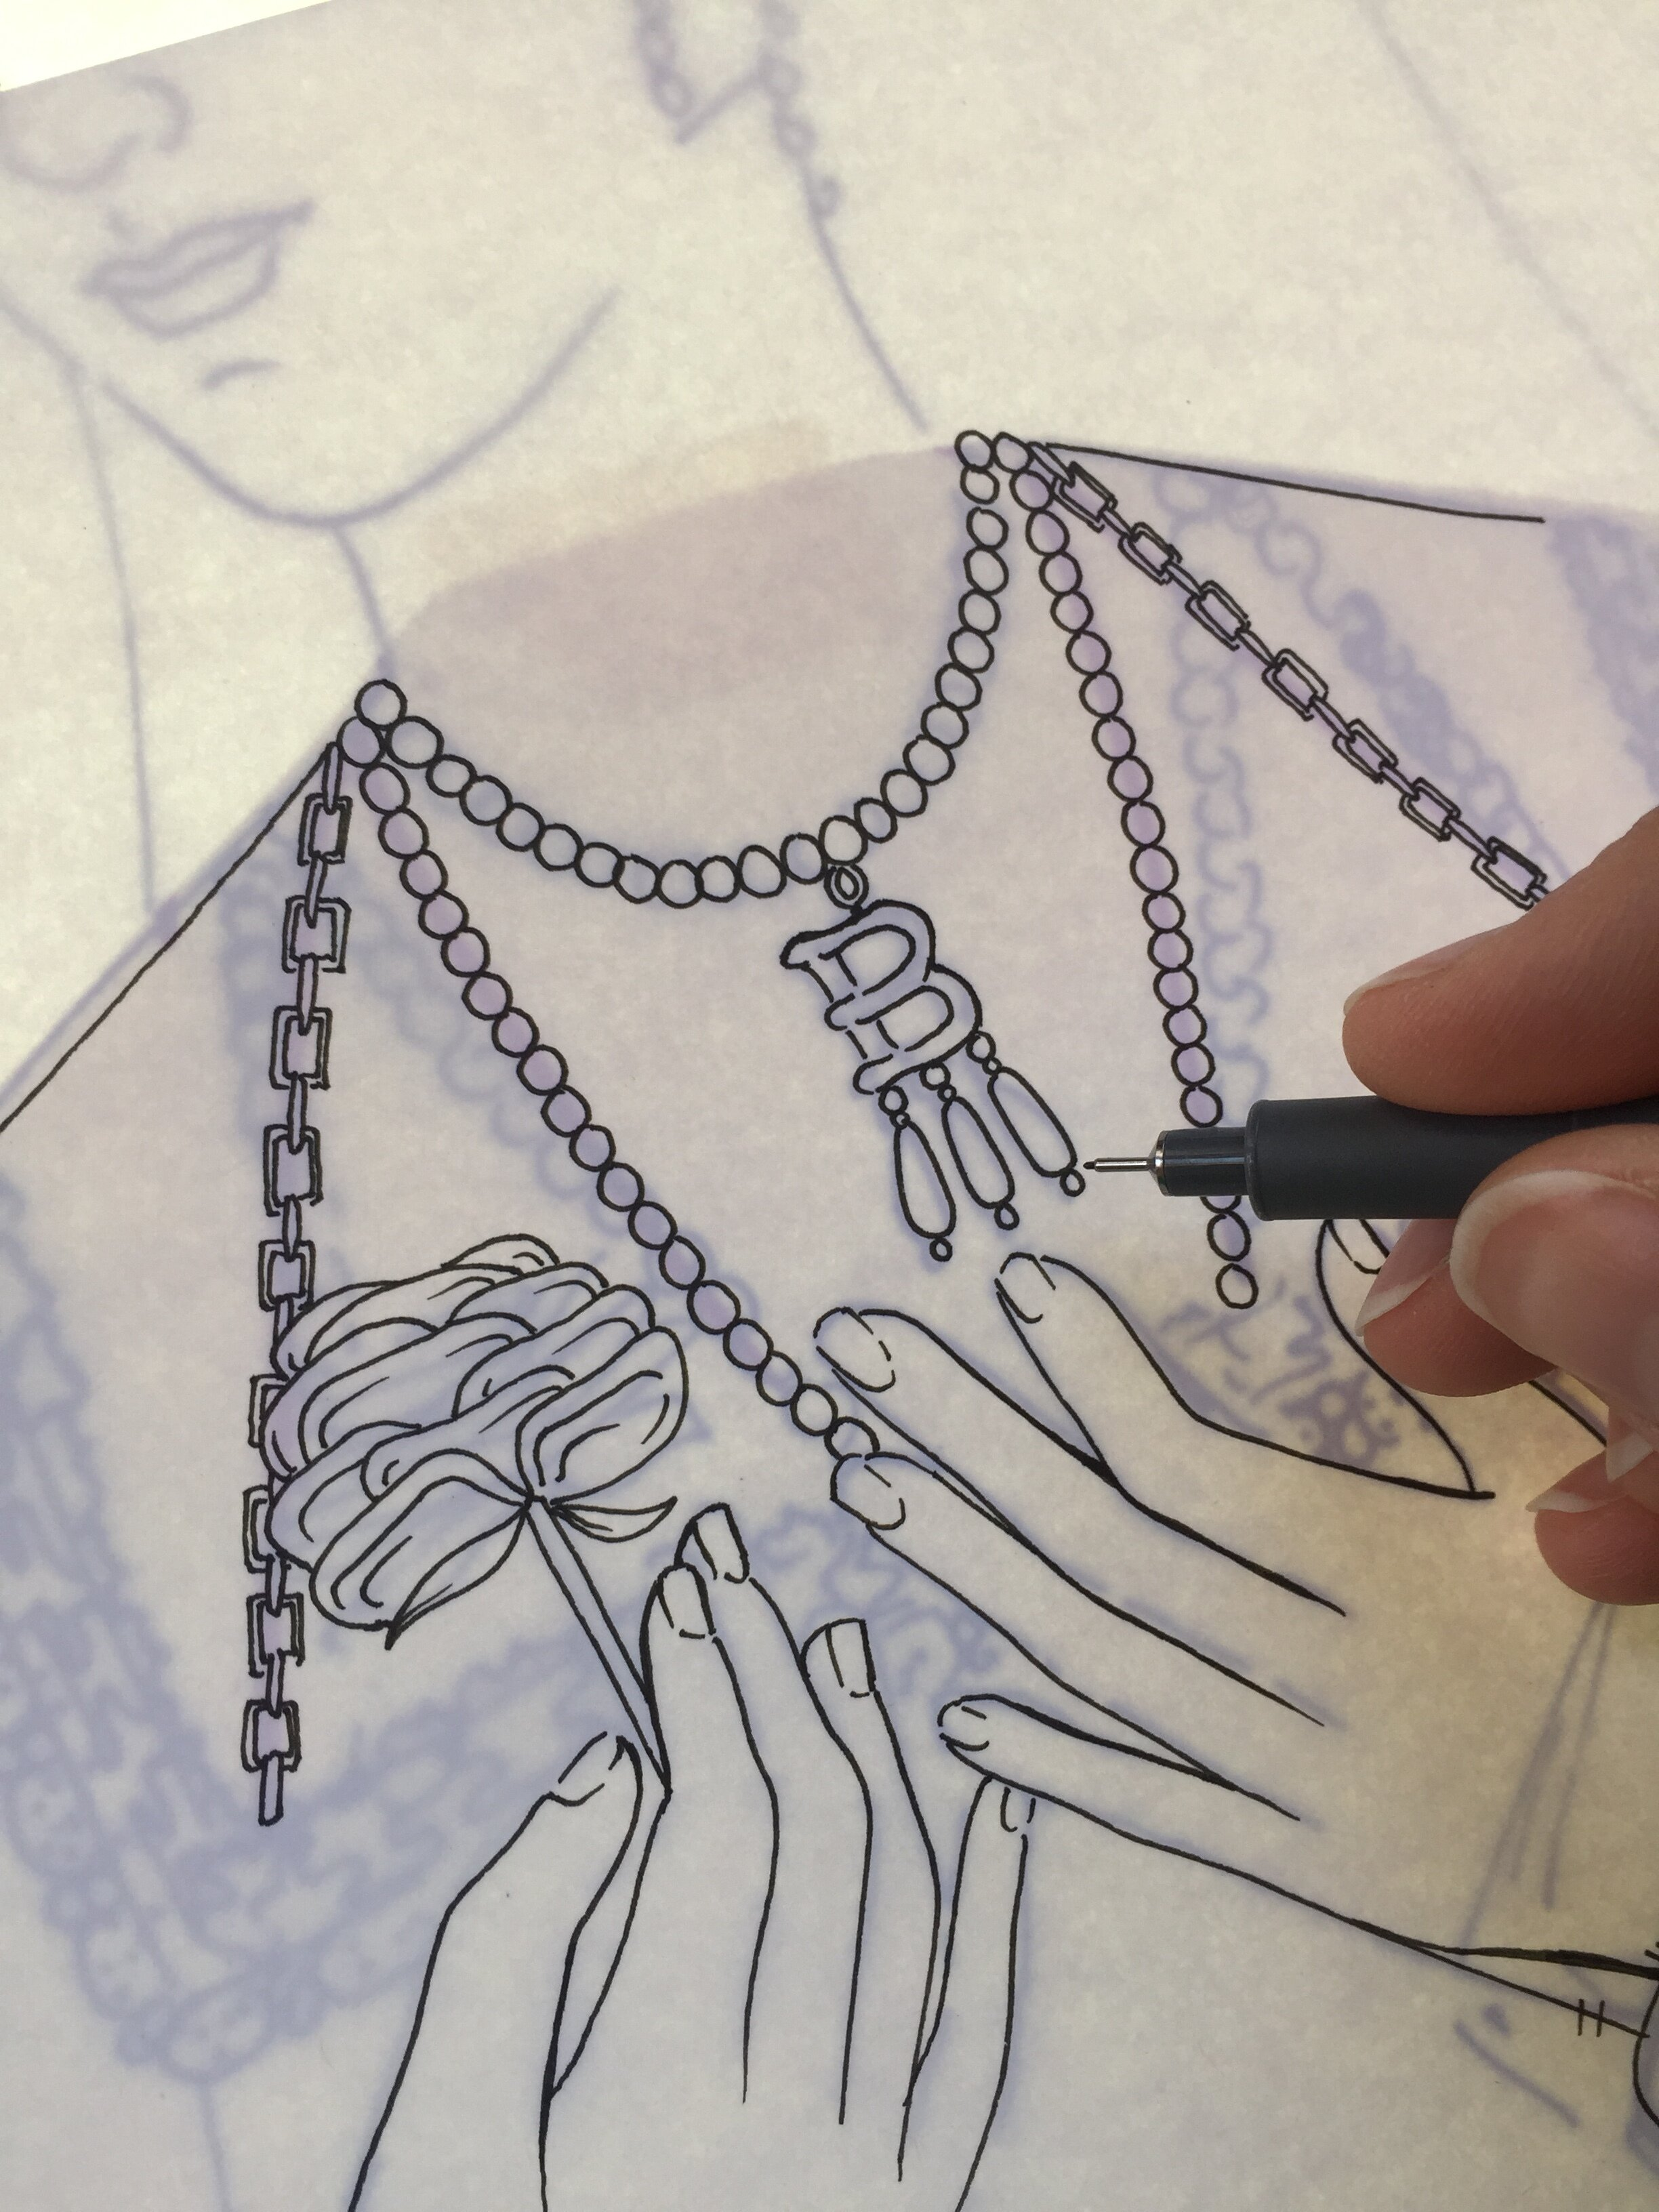 Inking stage for the Anne Boleyn page.